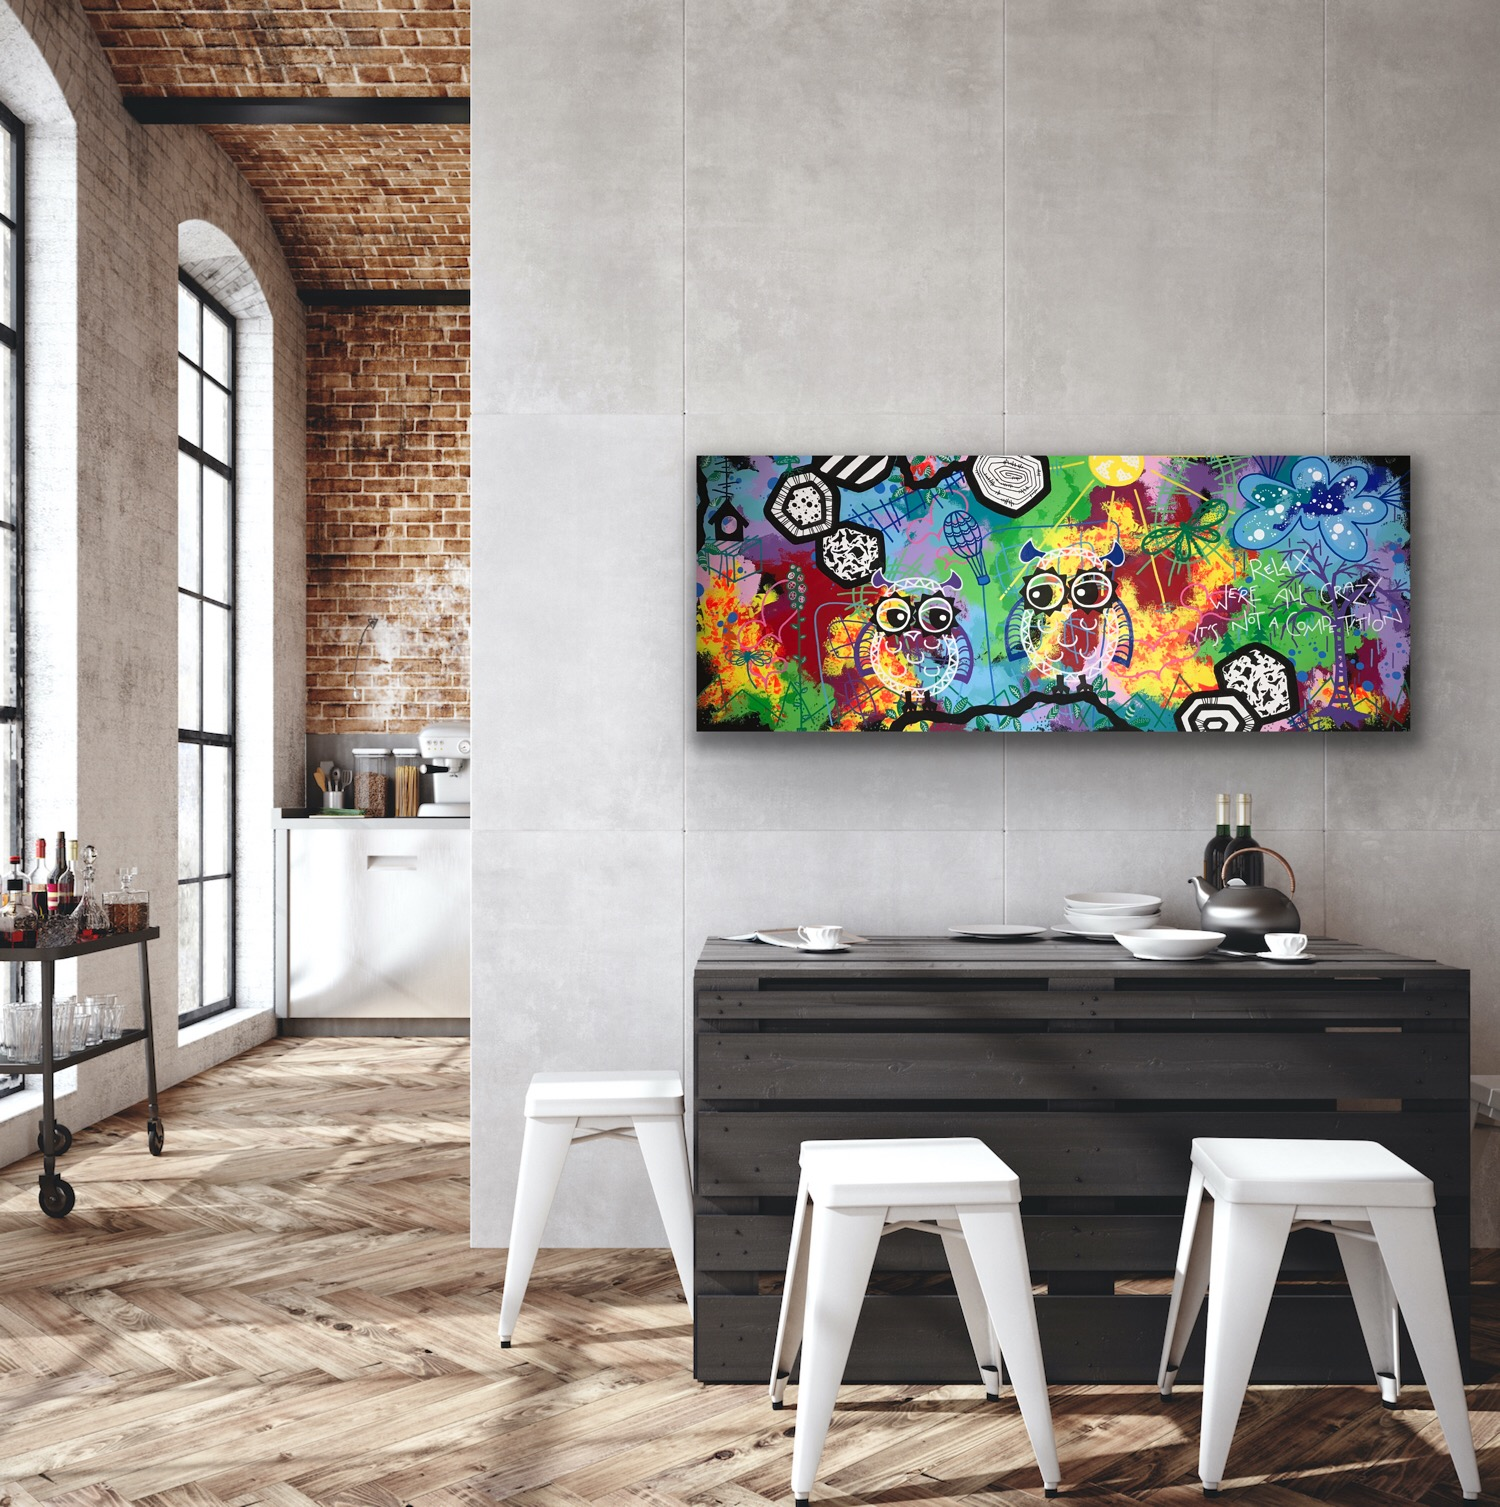 RELAX 50x125 - art by Jannie Nyegaard -